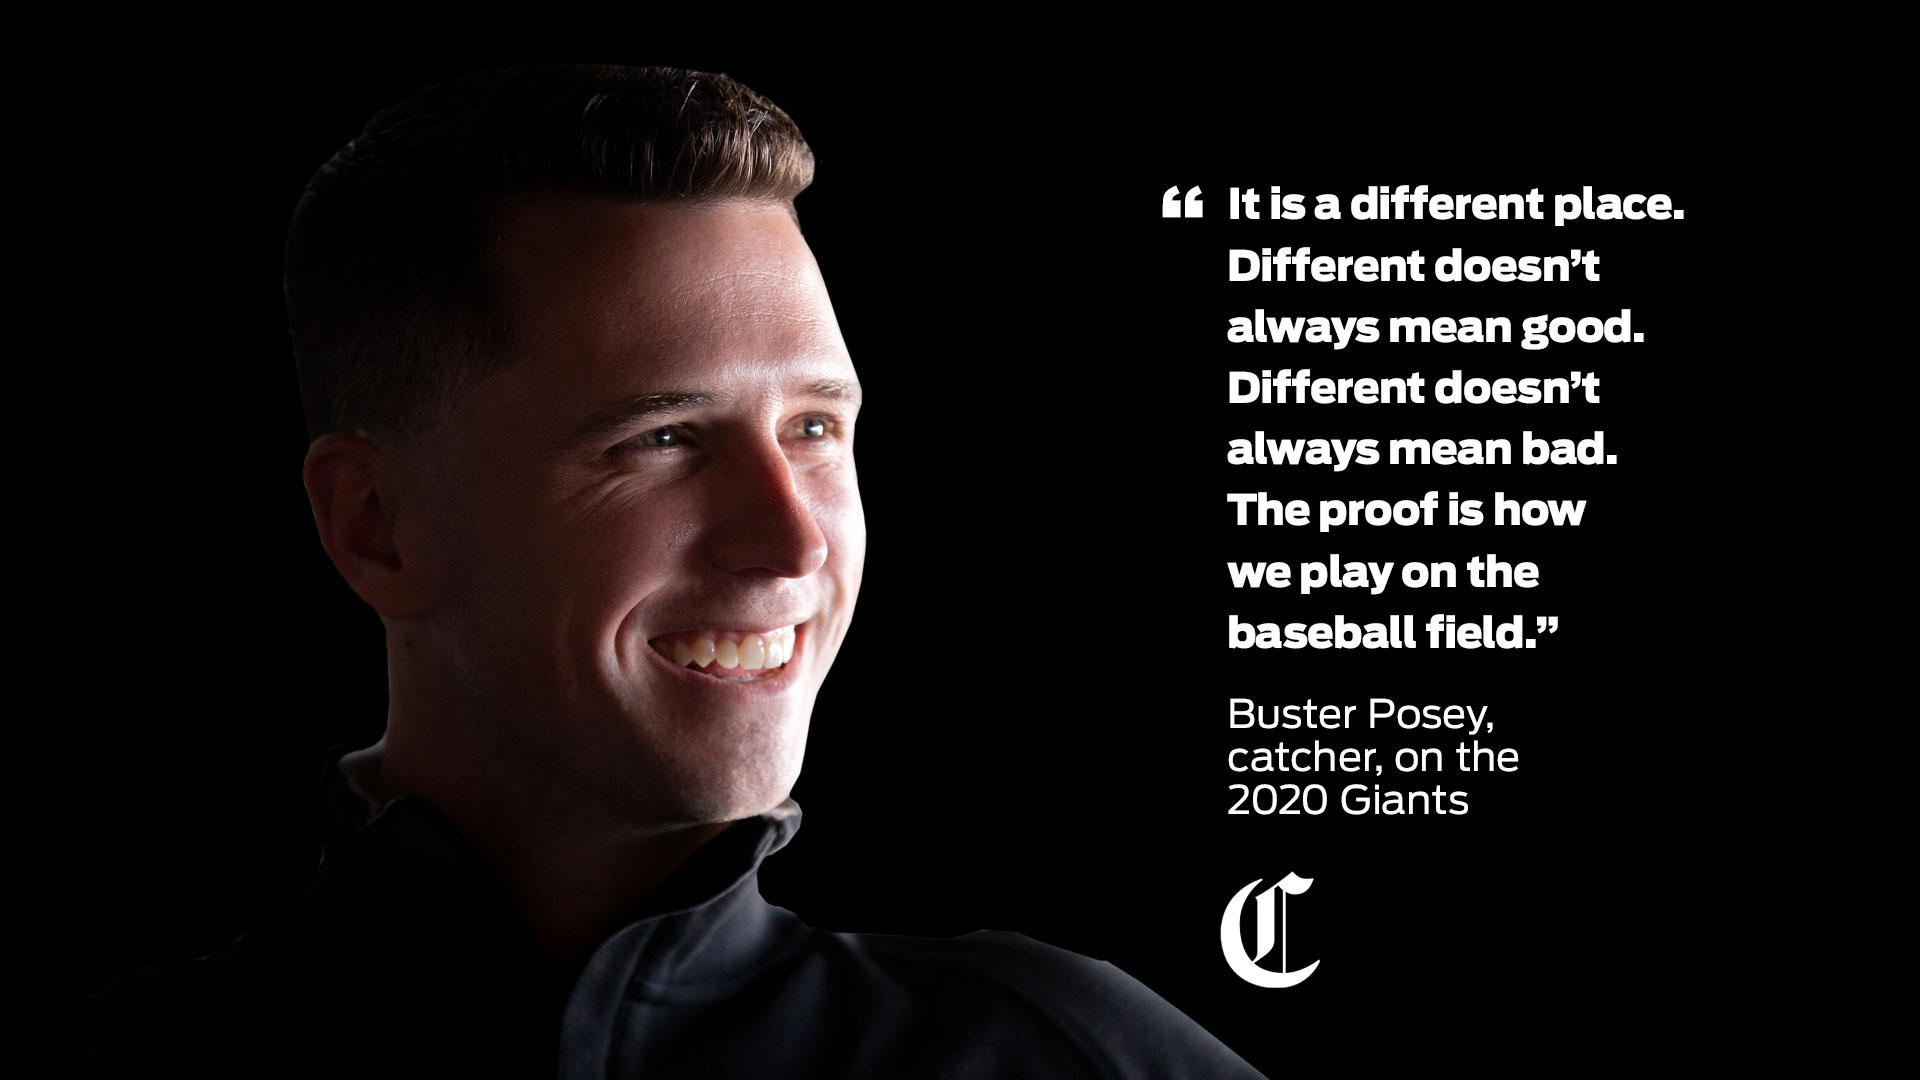 Forget Giants' new-age baseball jargon. 'Different' is the word of 2020